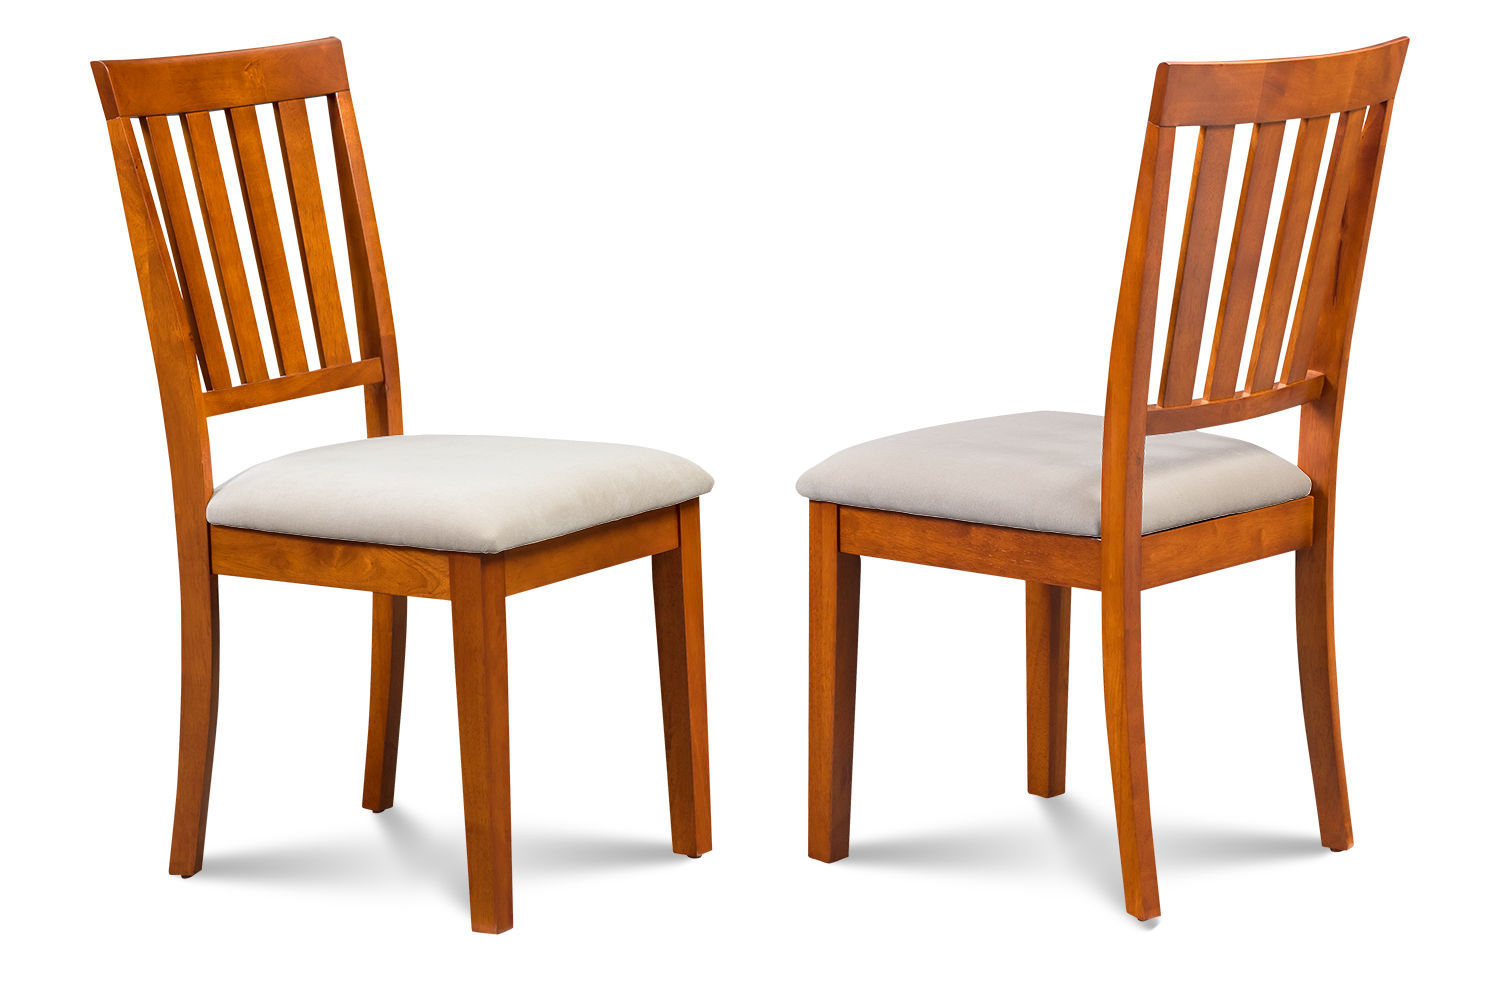 SET OF 2 MOCHA KITCHEN DINING CHAIRS WITH SOFT-PADDED SEAT